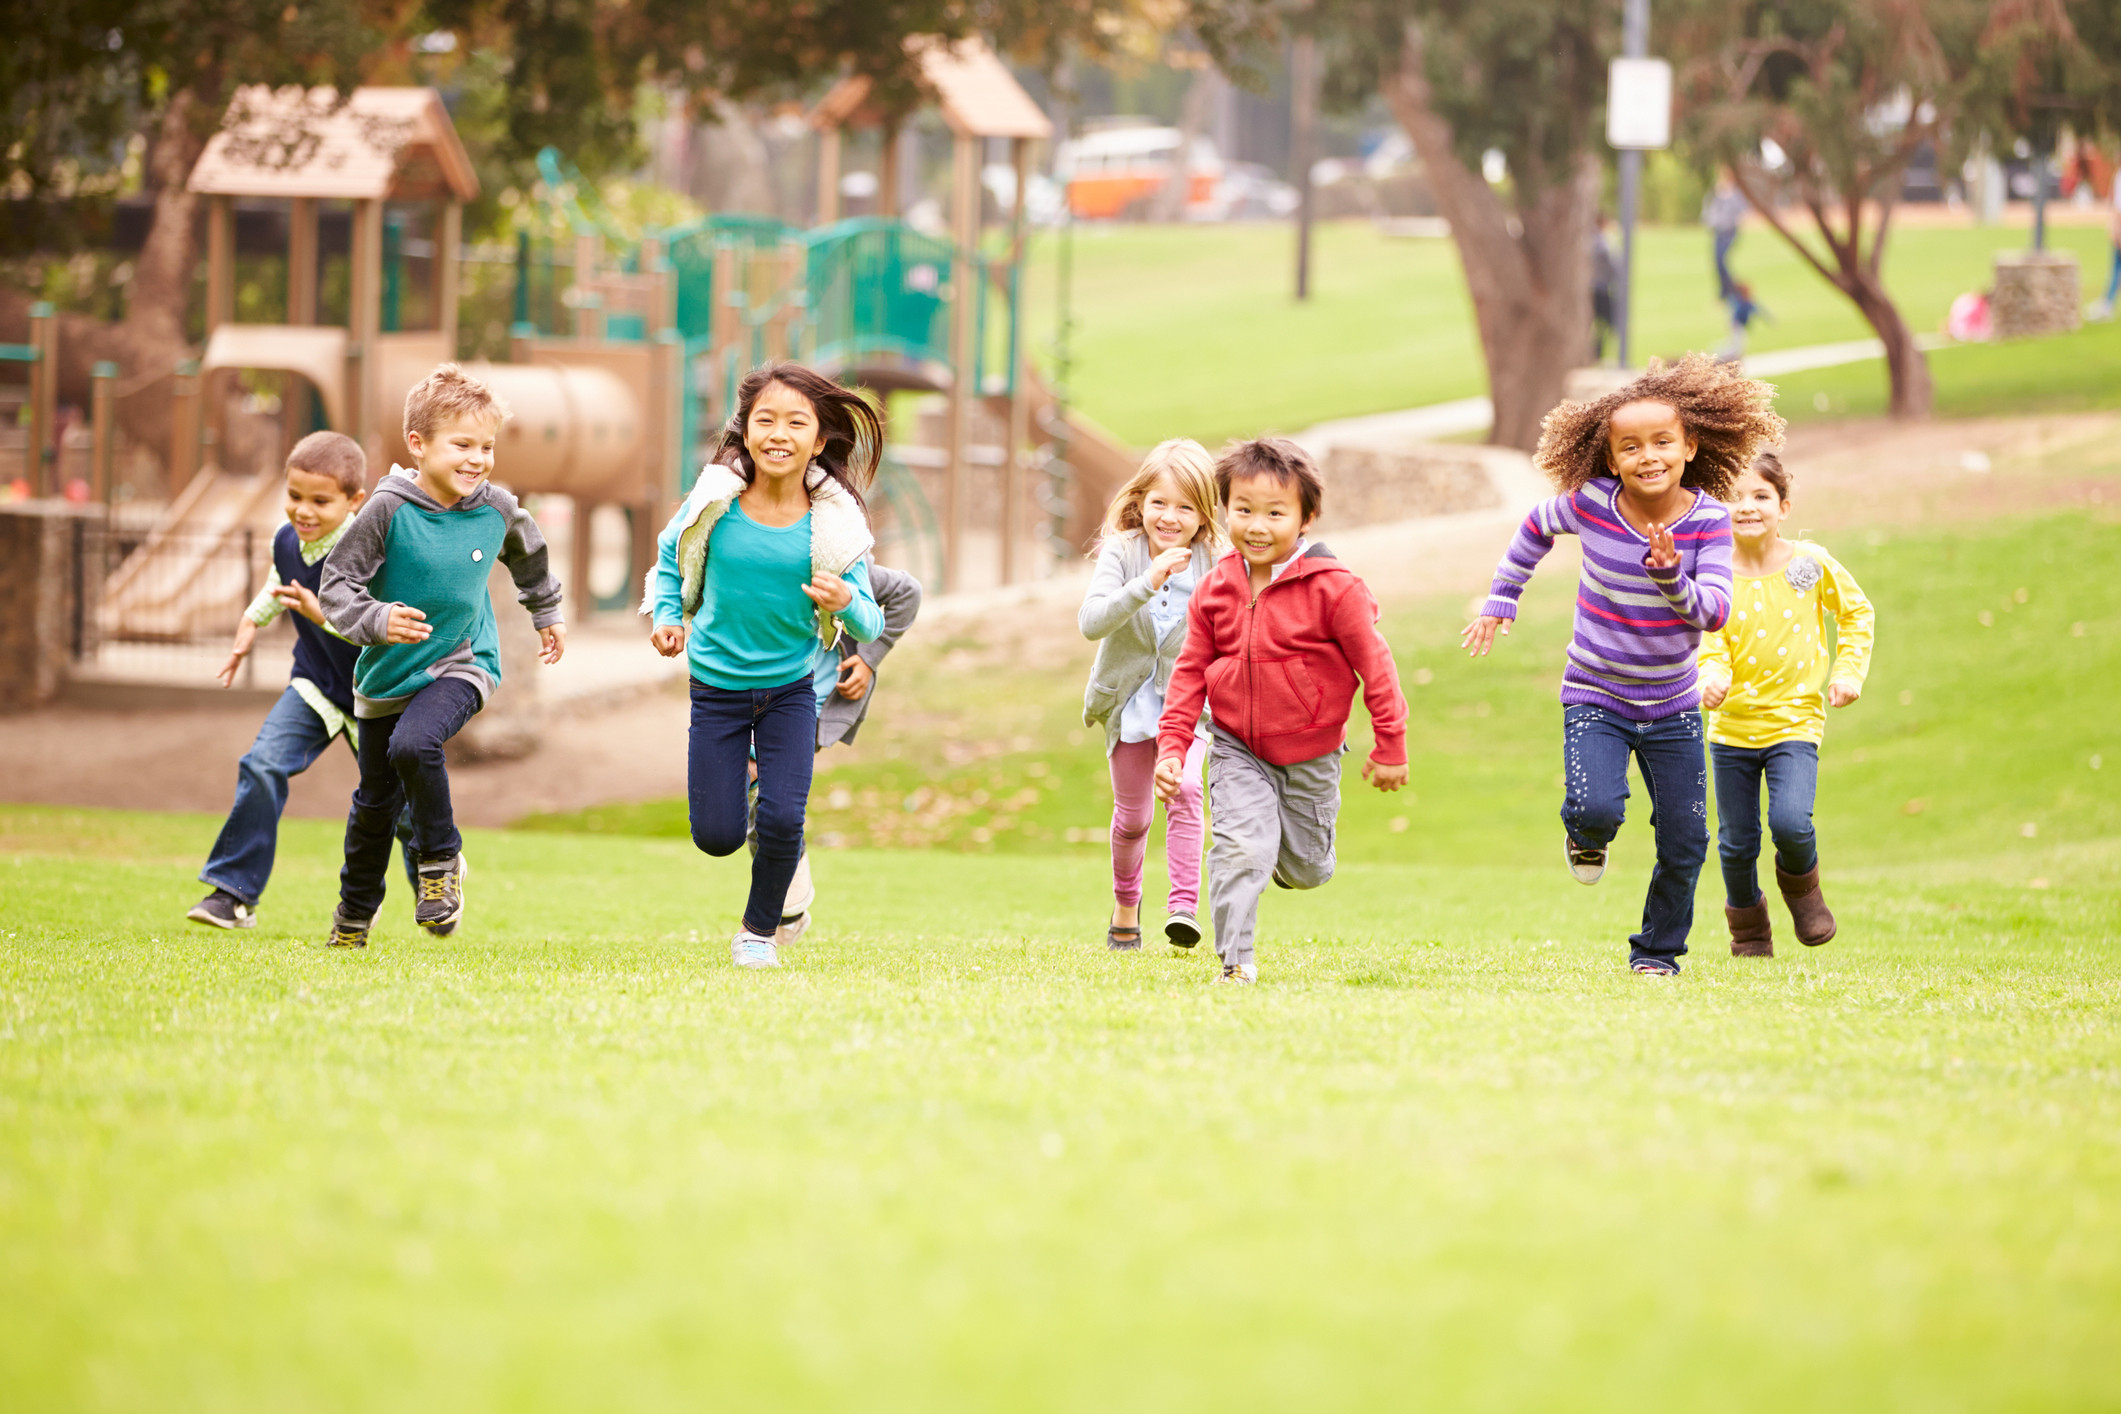 children running in a field with a playground behind them